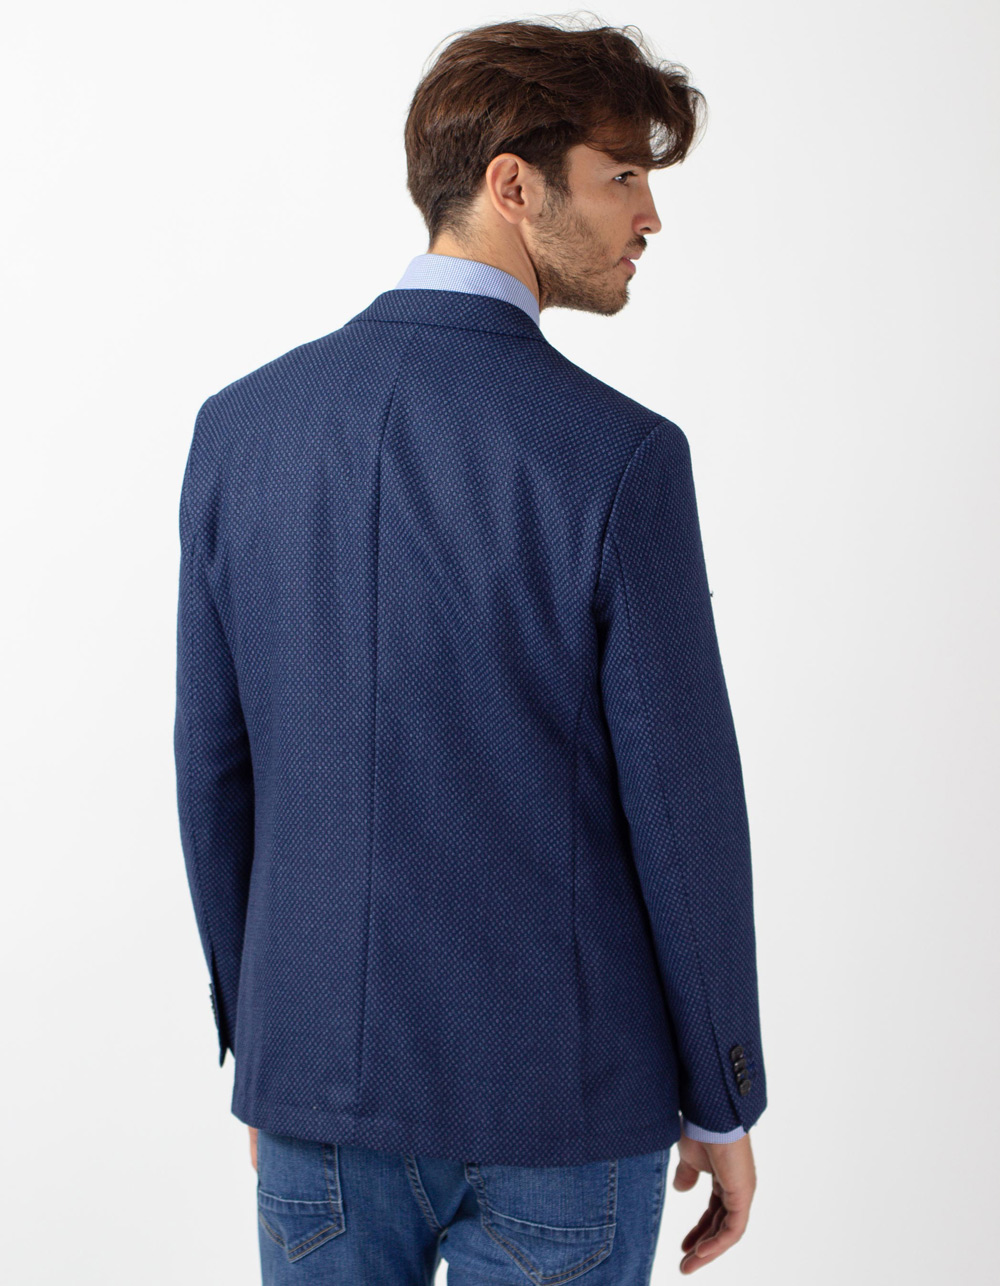 Navy blue wool blazer - Backside